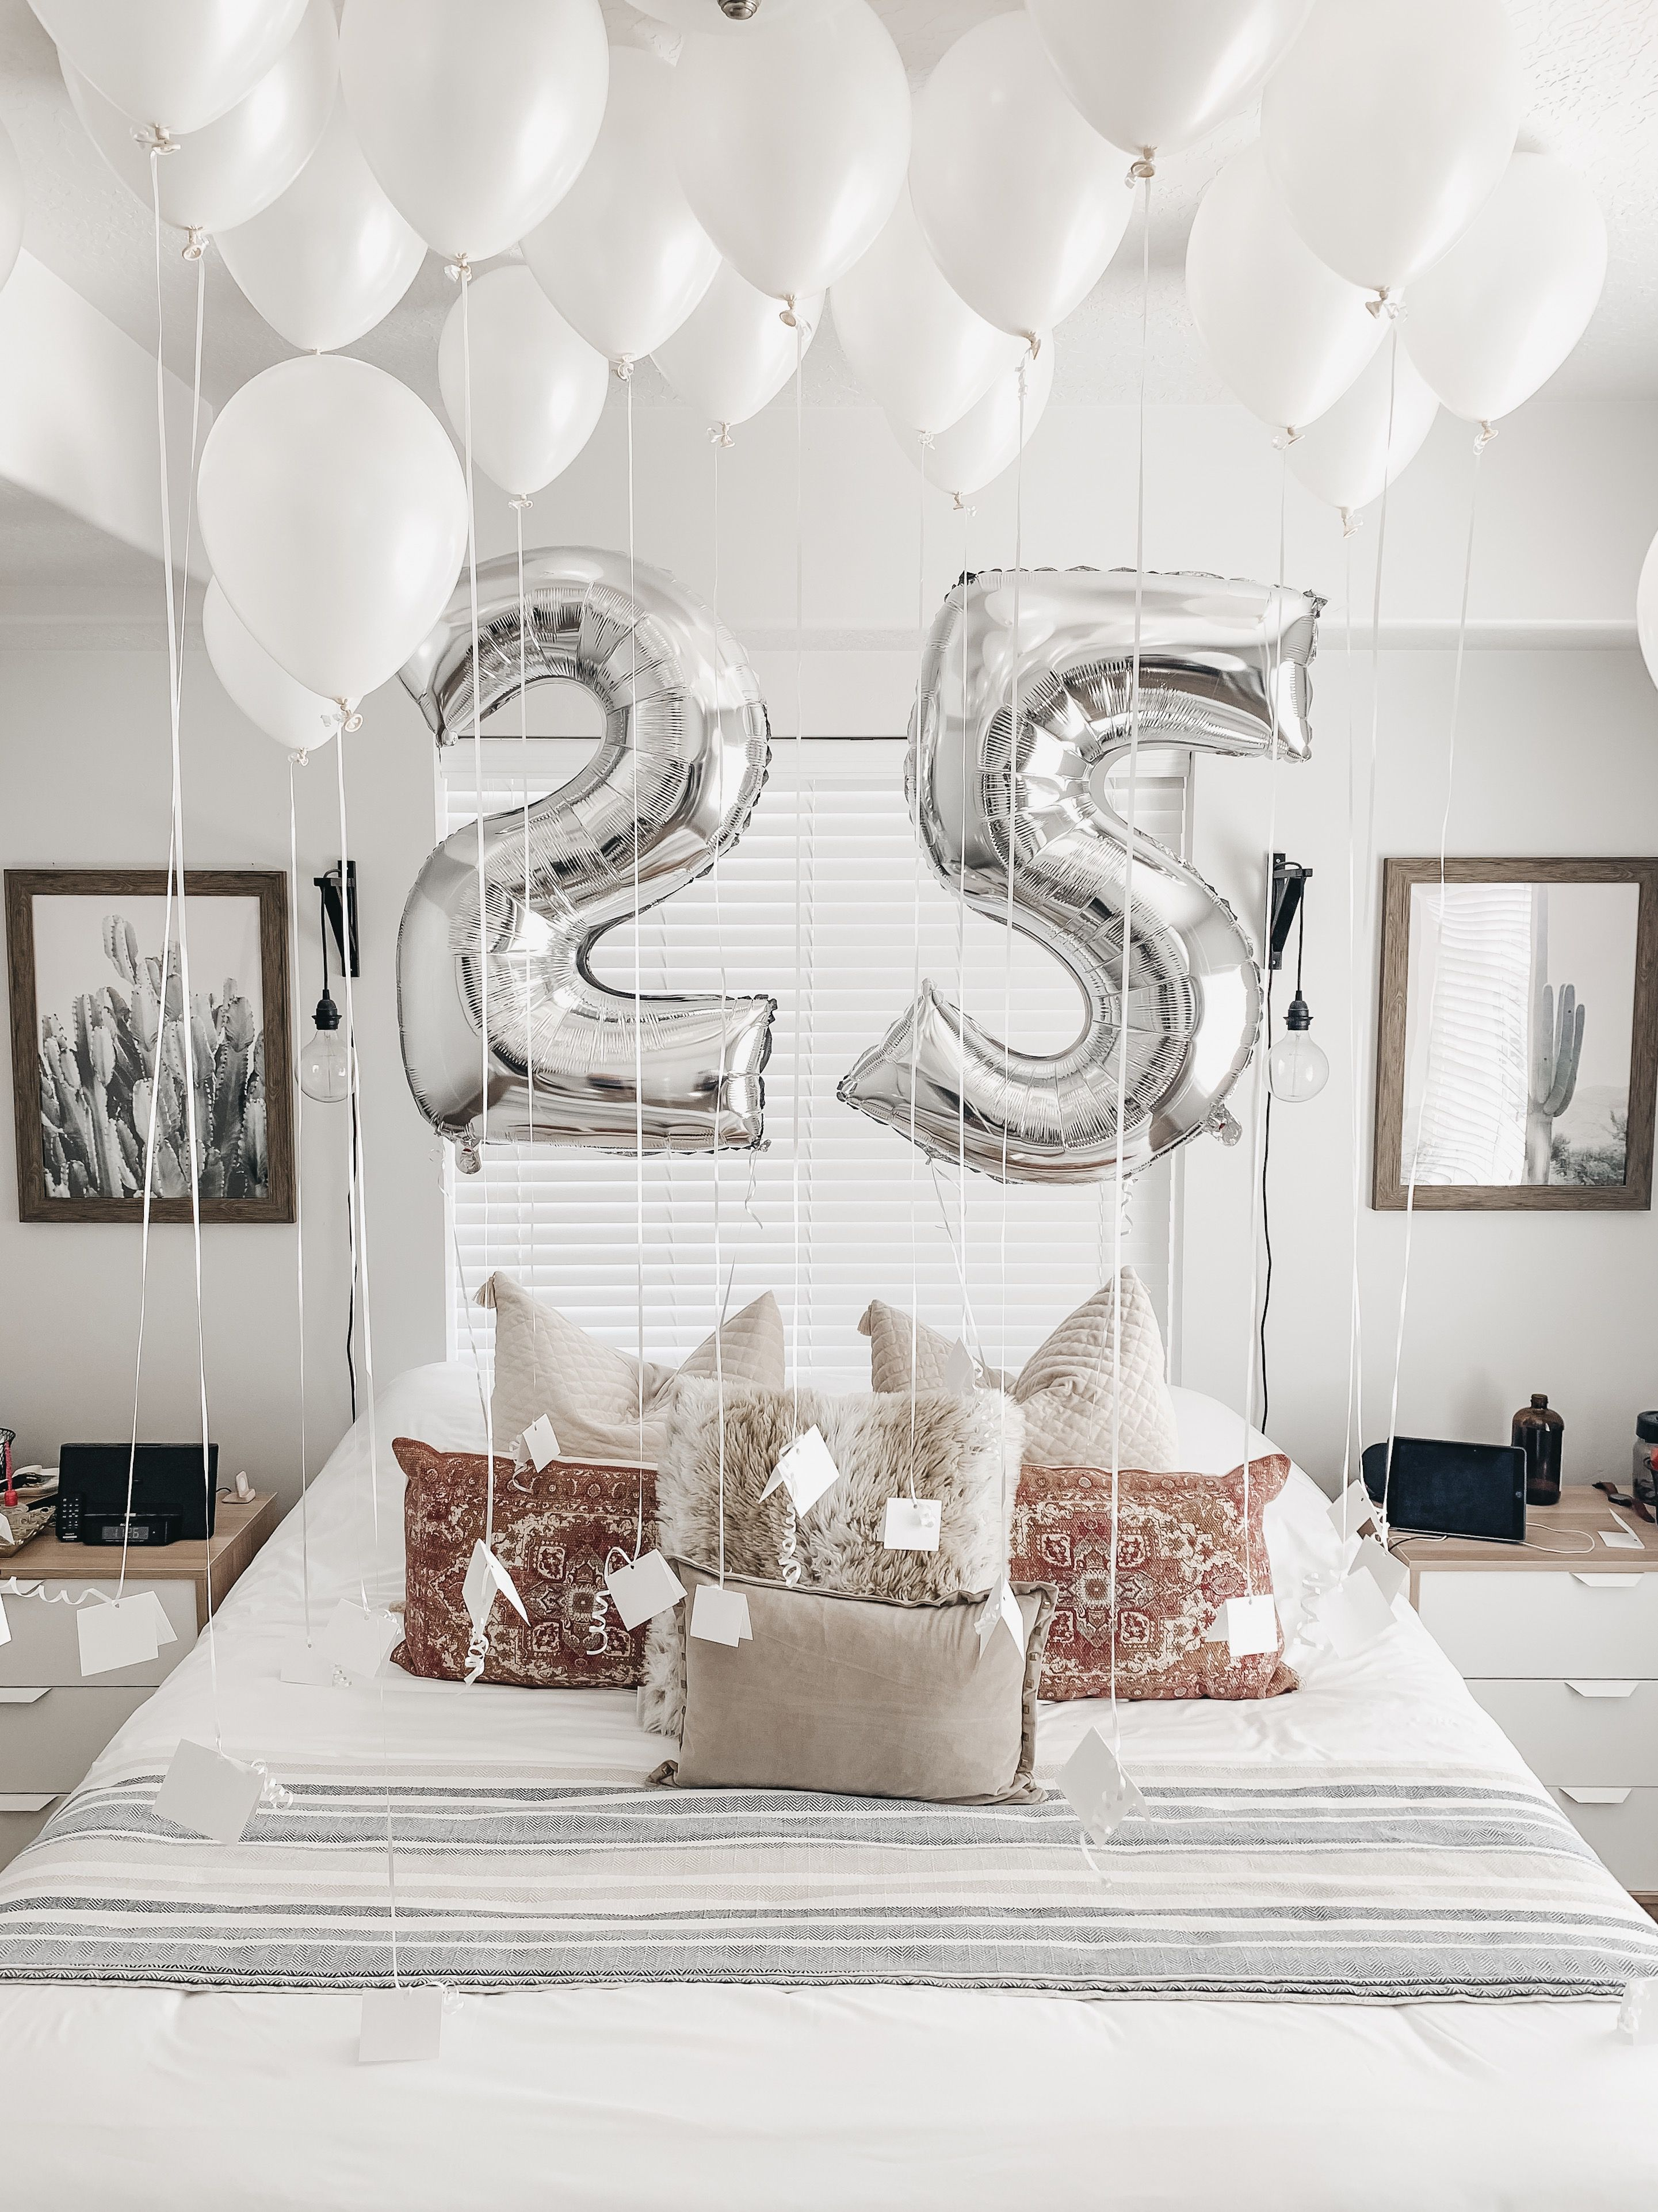 25 things ive learned in 25 years with images 25th